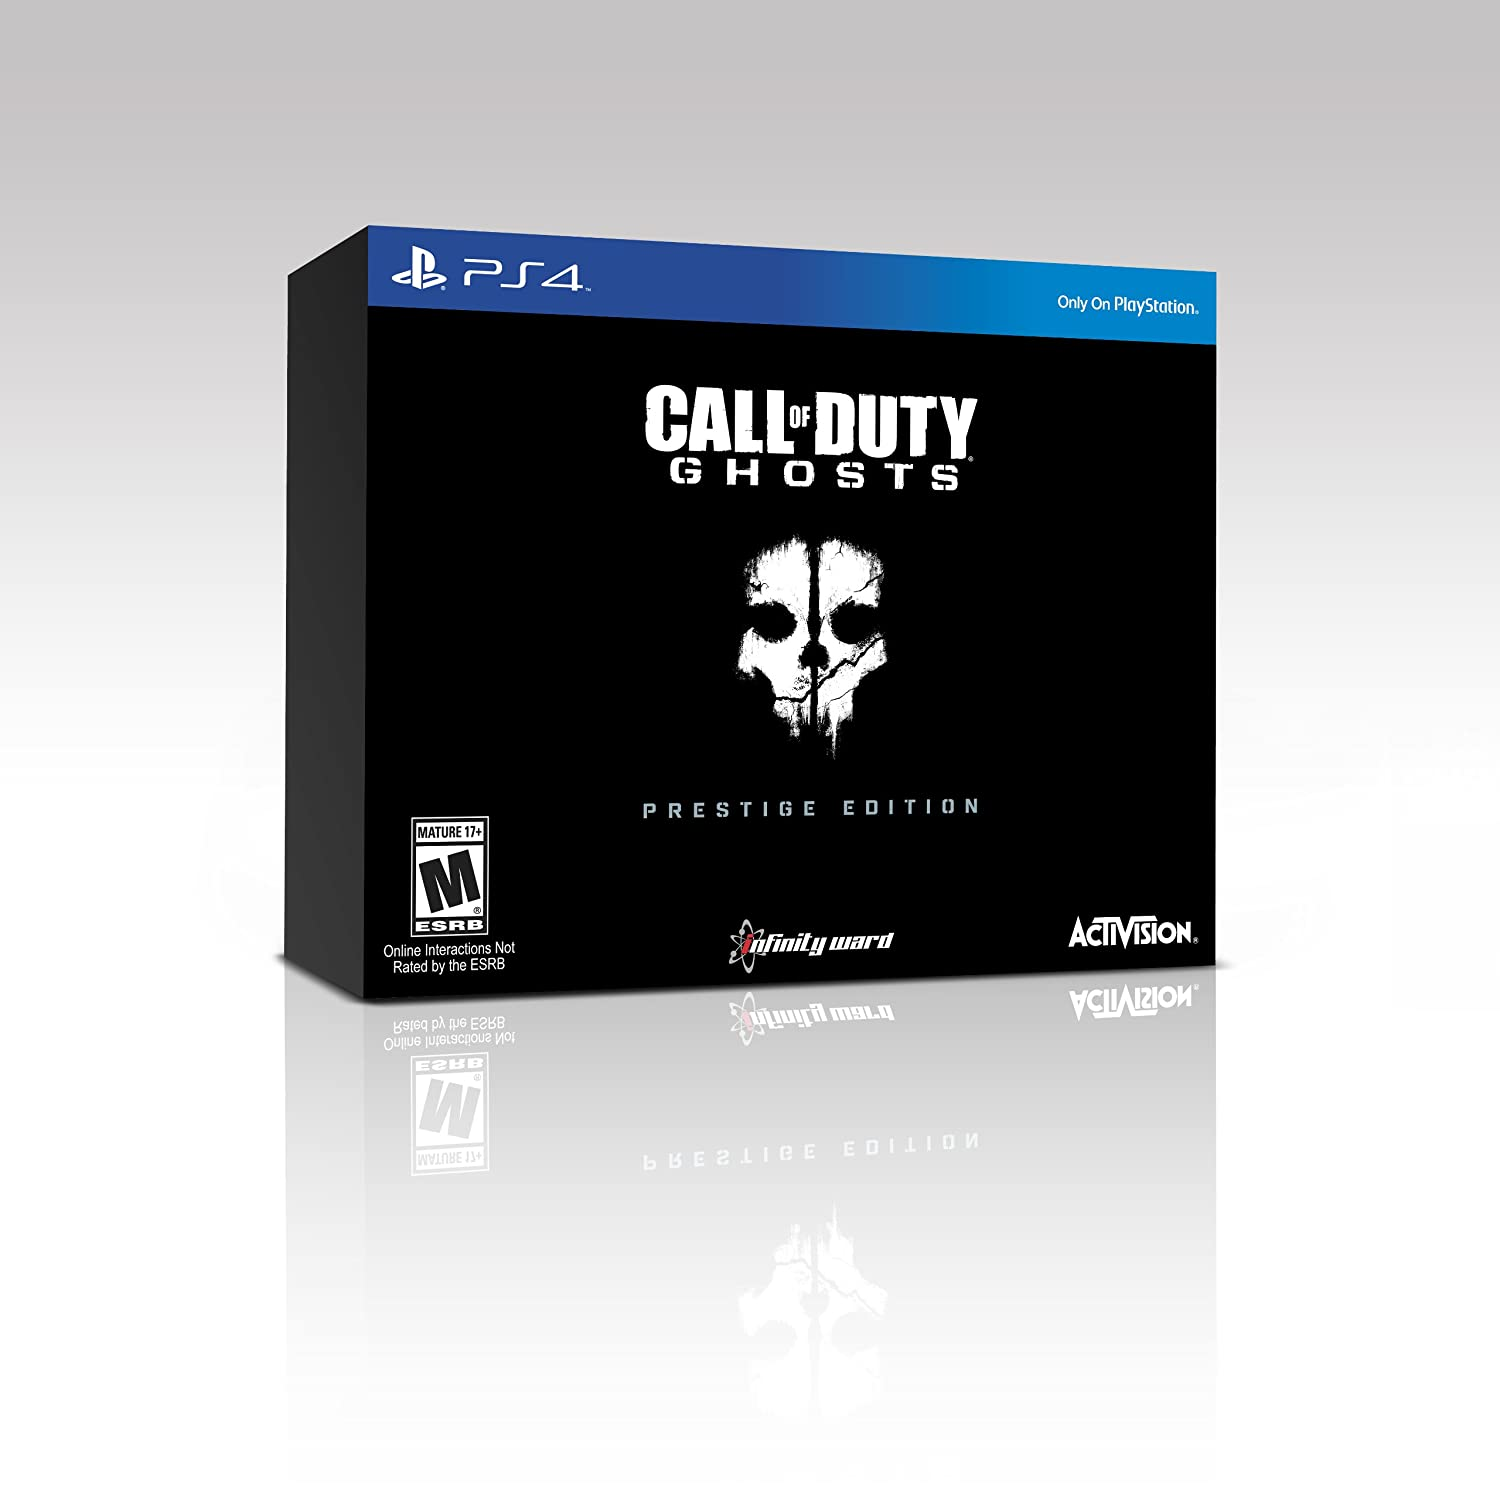 Call of Duty: Ghosts (Prestige Edition) - PlayStation 4 [NEW]